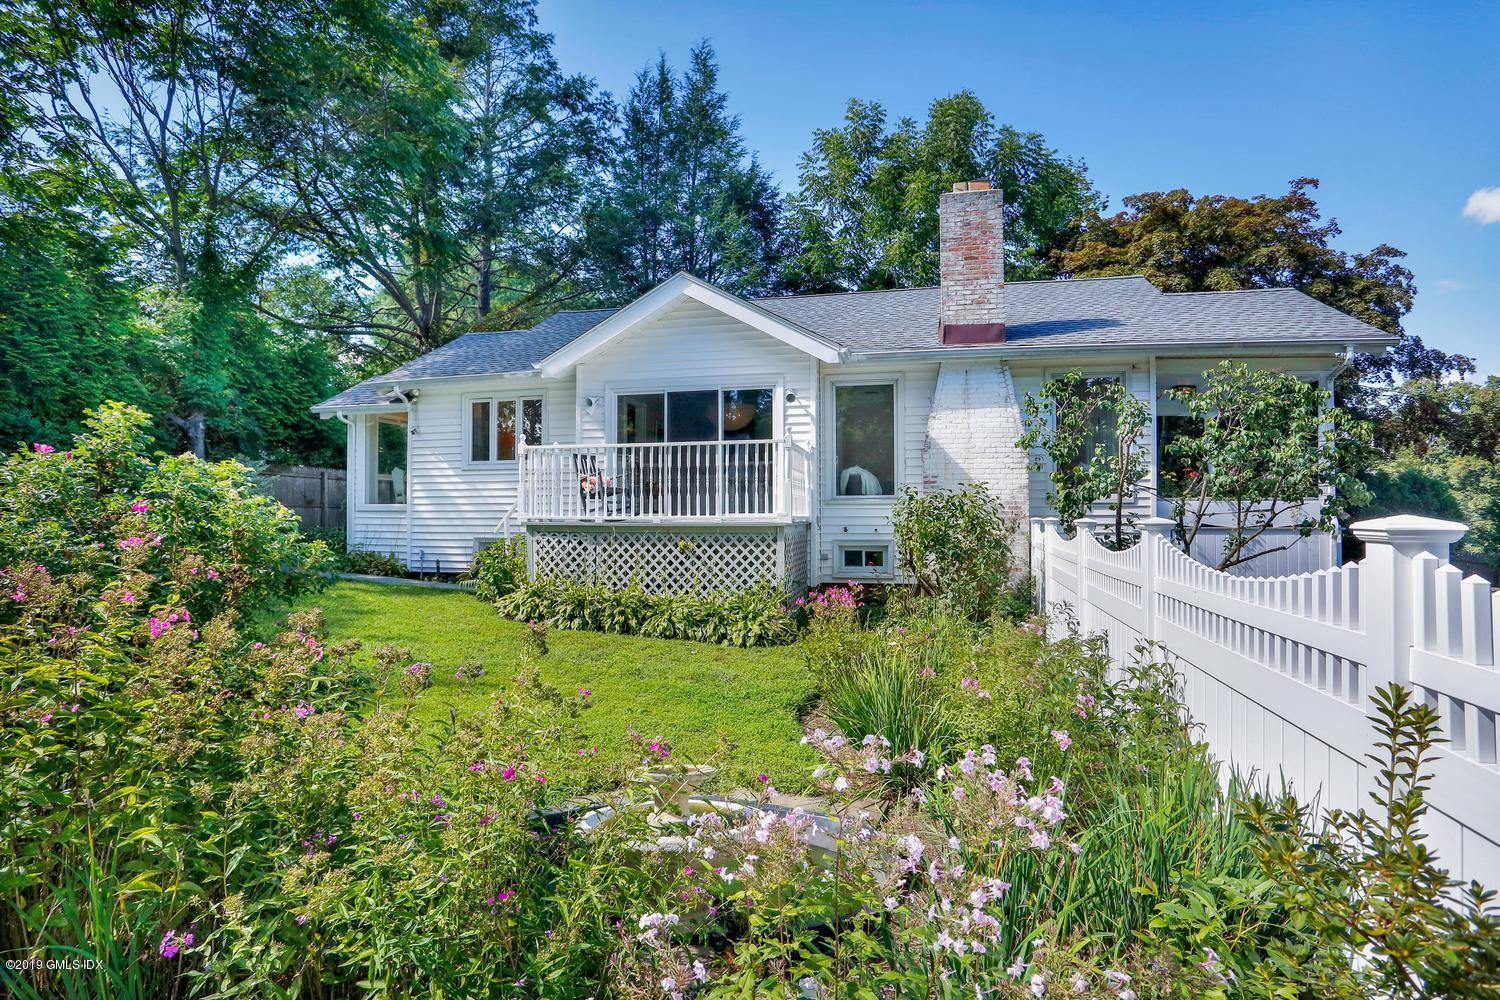 1015 North Street,Greenwich,Connecticut 06831,2 Bedrooms Bedrooms,2 BathroomsBathrooms,Single family,North,108044